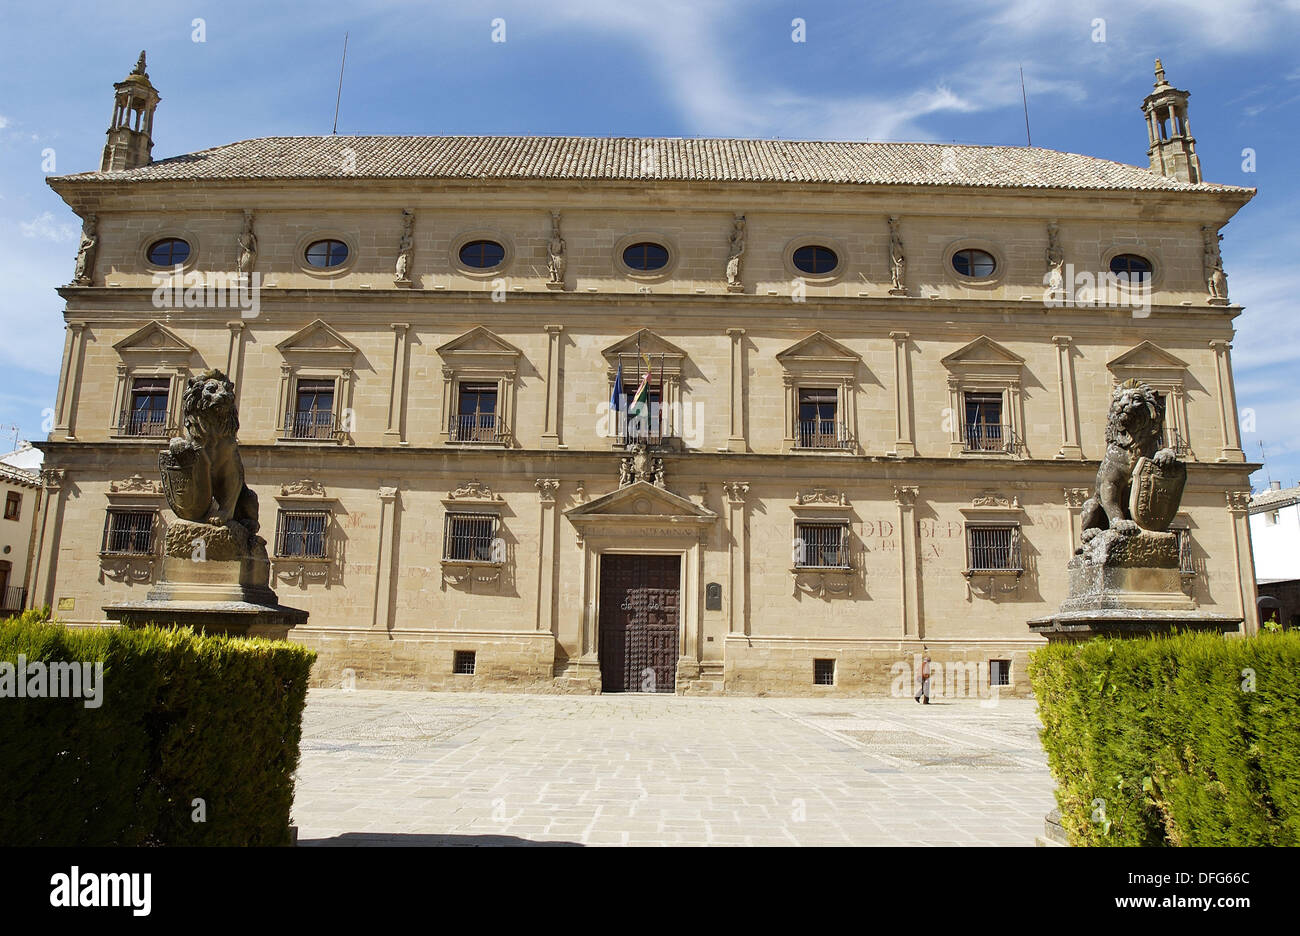 Palacio de las Cadenas in the town of Ubeda, now occupied by the Town Hall. Jaen province. Andalusia. Spain - Stock Image